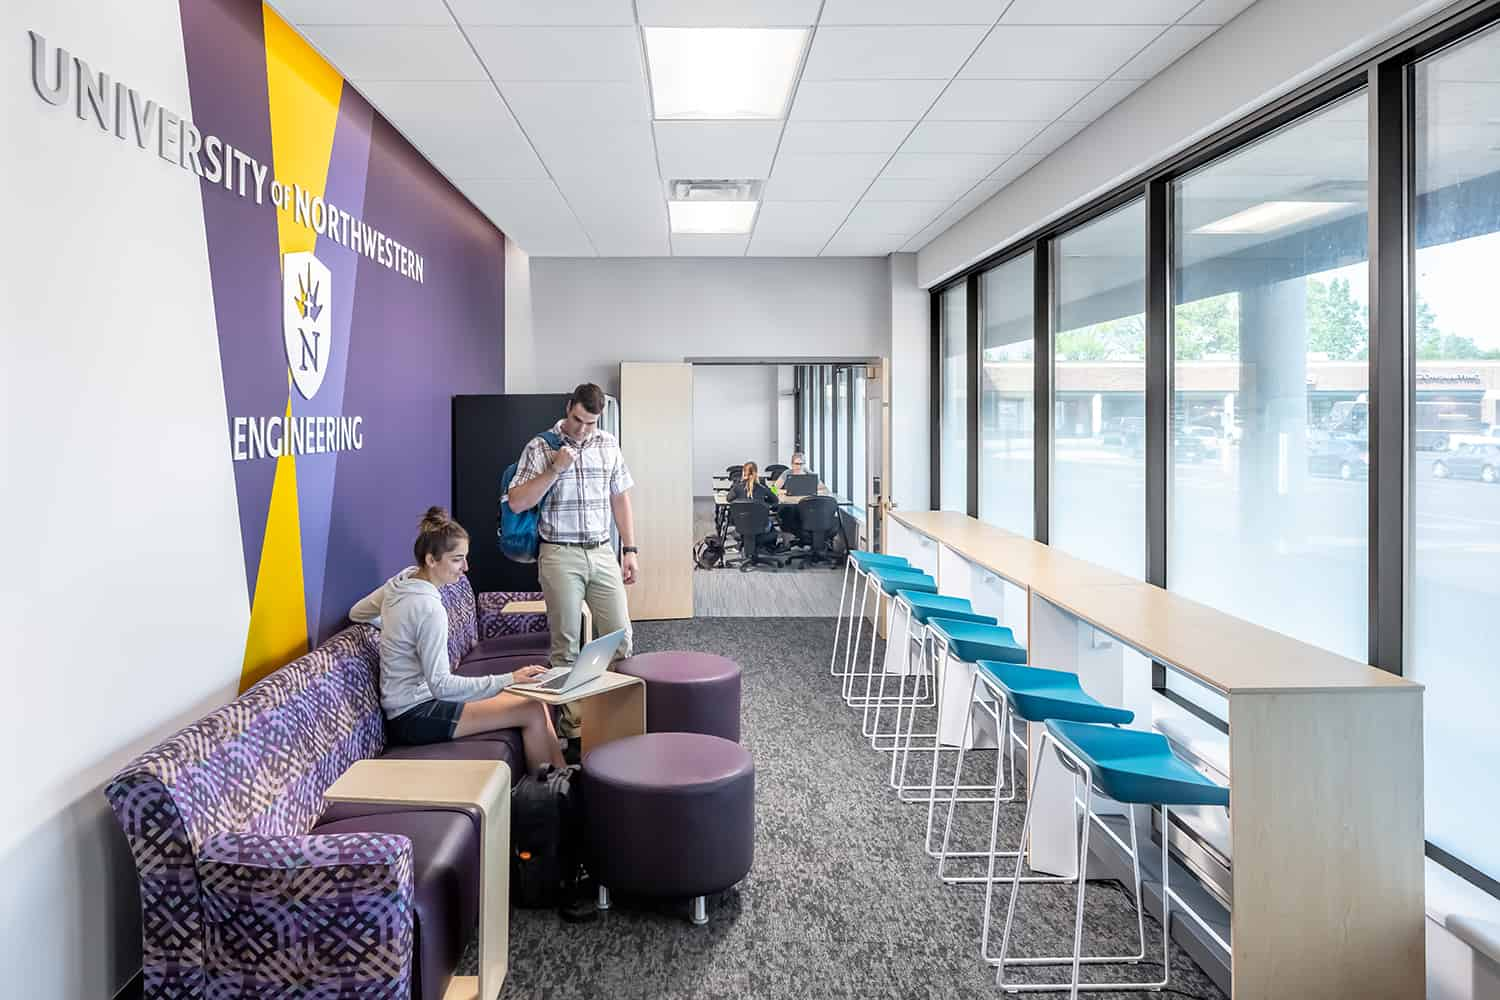 A branded breakout workspace in the entry to the engineering classroom facility.